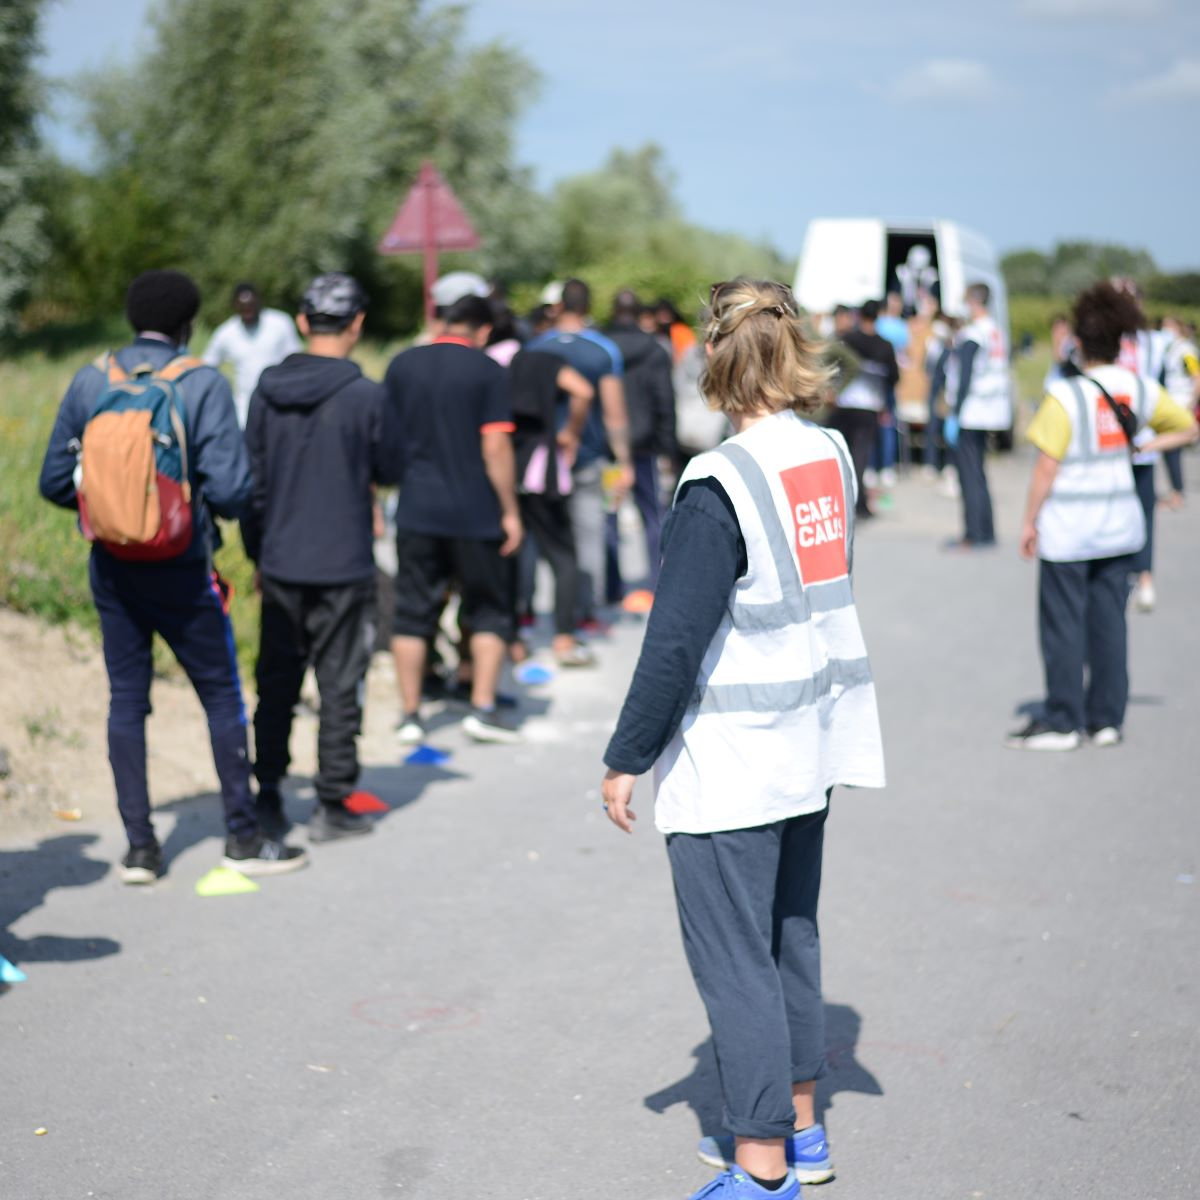 Opinion: my experience of a Calais refugee camp